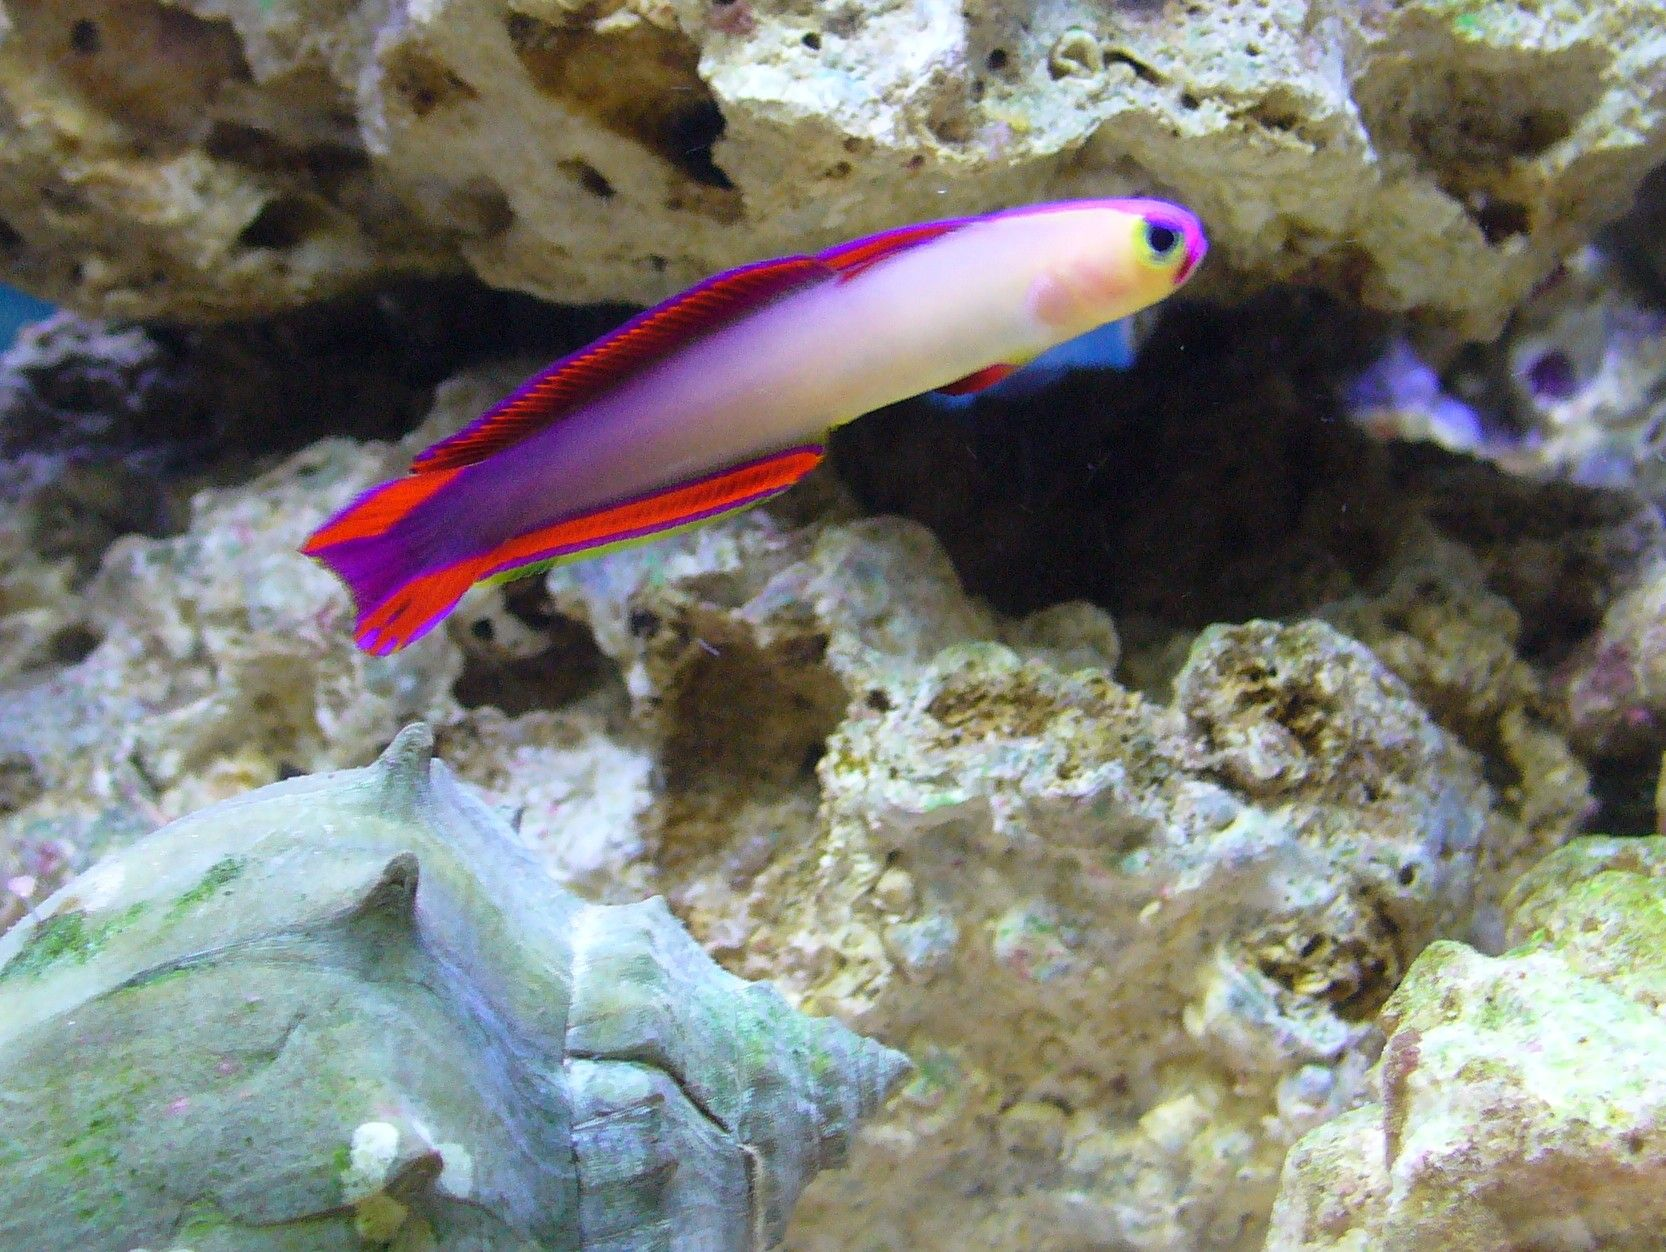 Purple Firefish Thinking About Getting One For My Tank Salt Water Fish Saltwater Fish Tanks Saltwater